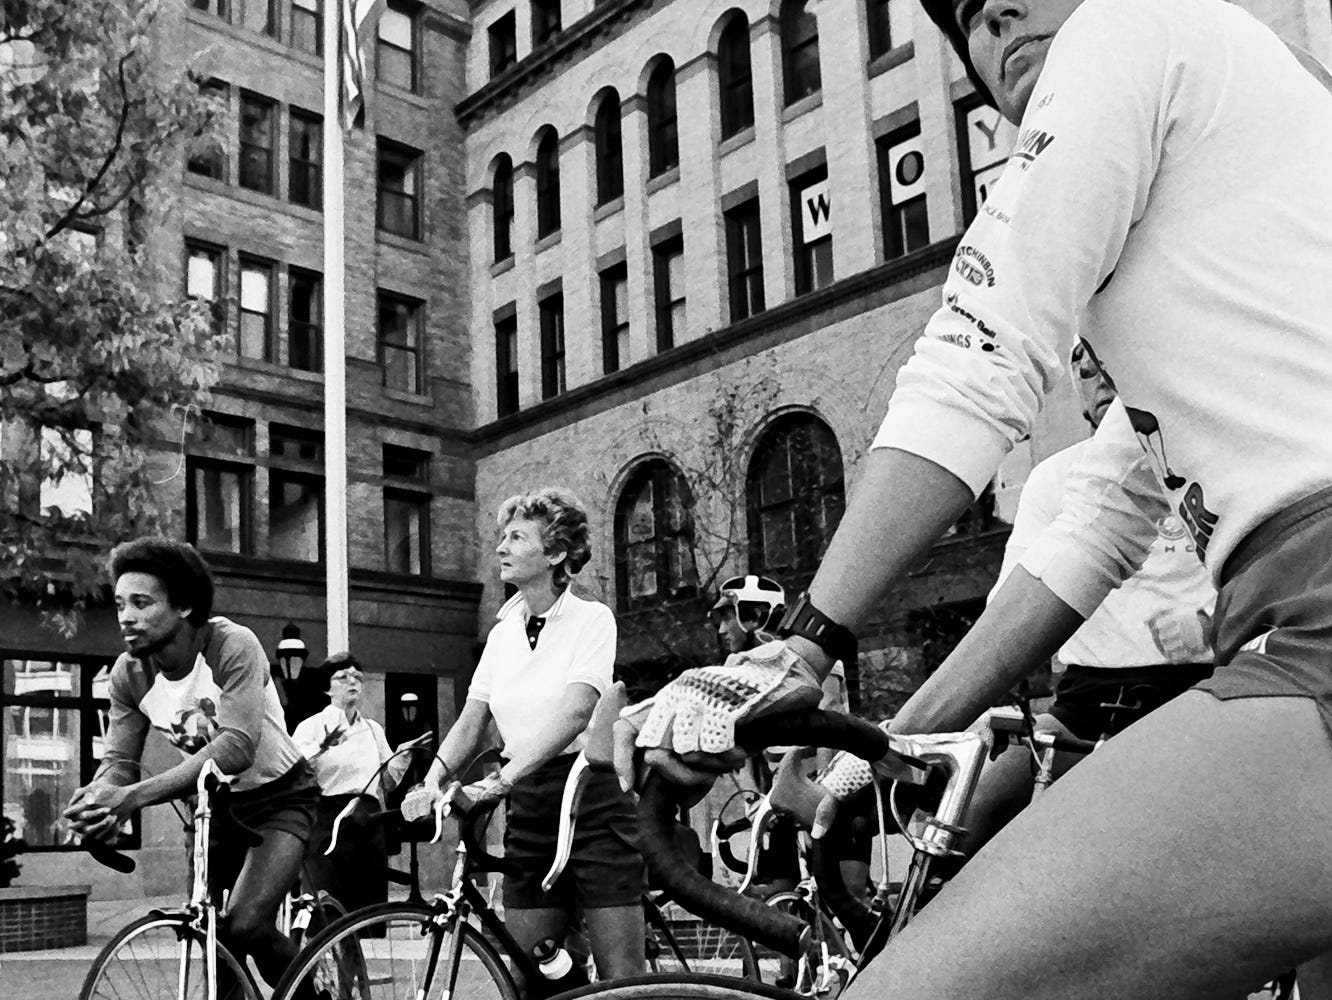 In 1985, people rode bicycles on Continental Square in York.